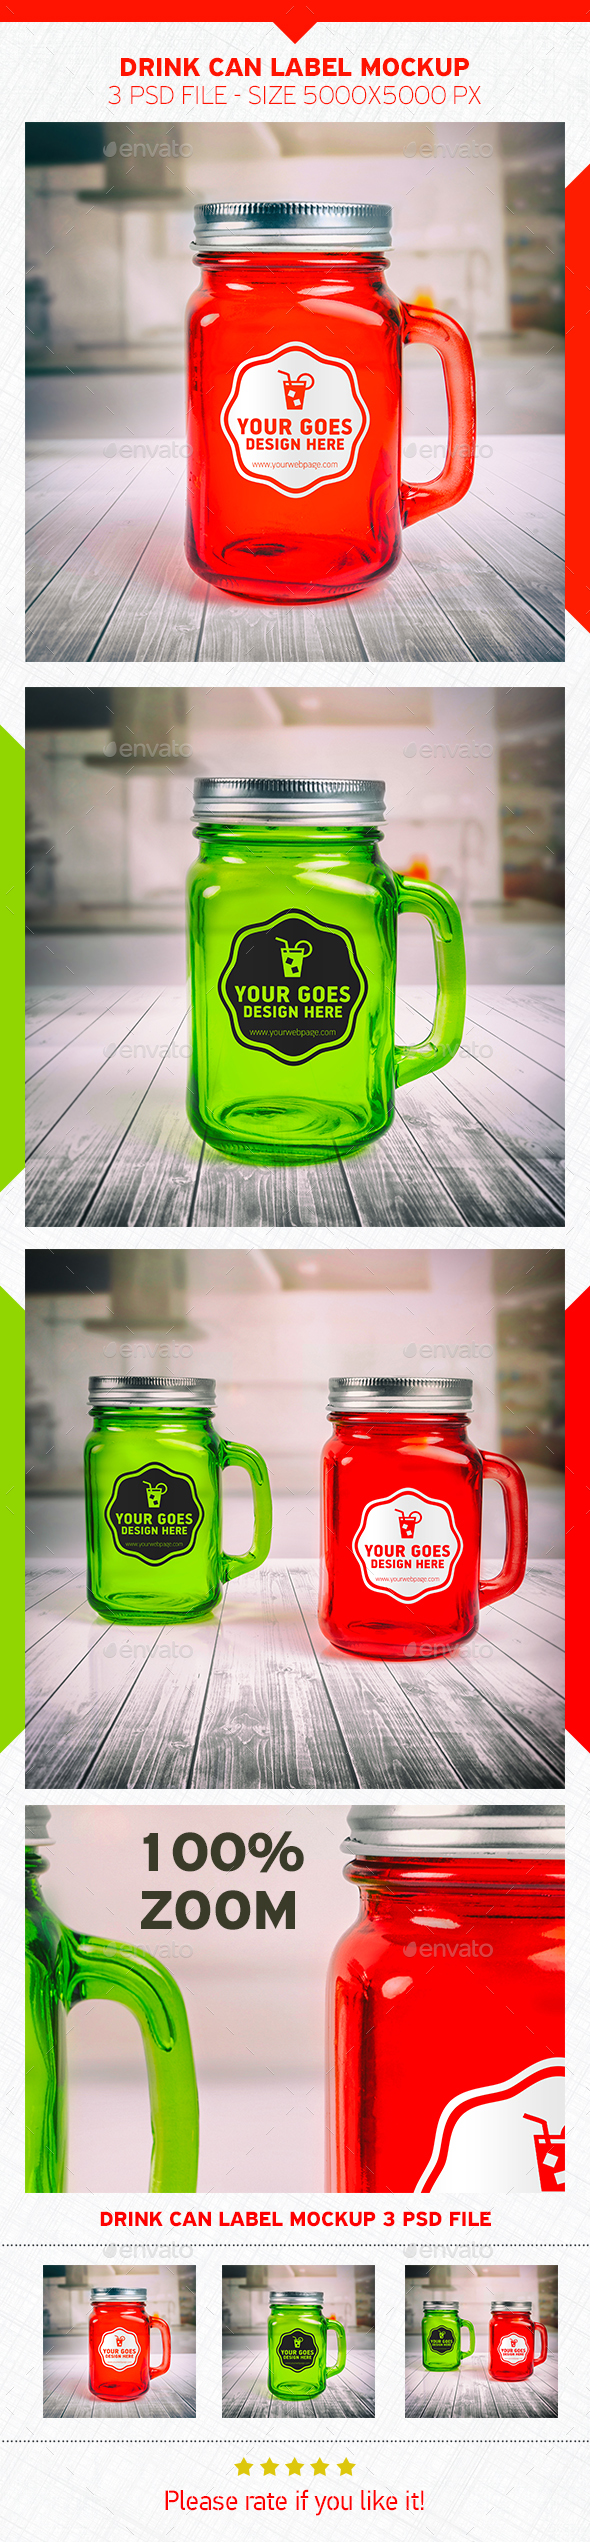 Drink Can Label Mockup - Food and Drink Packaging